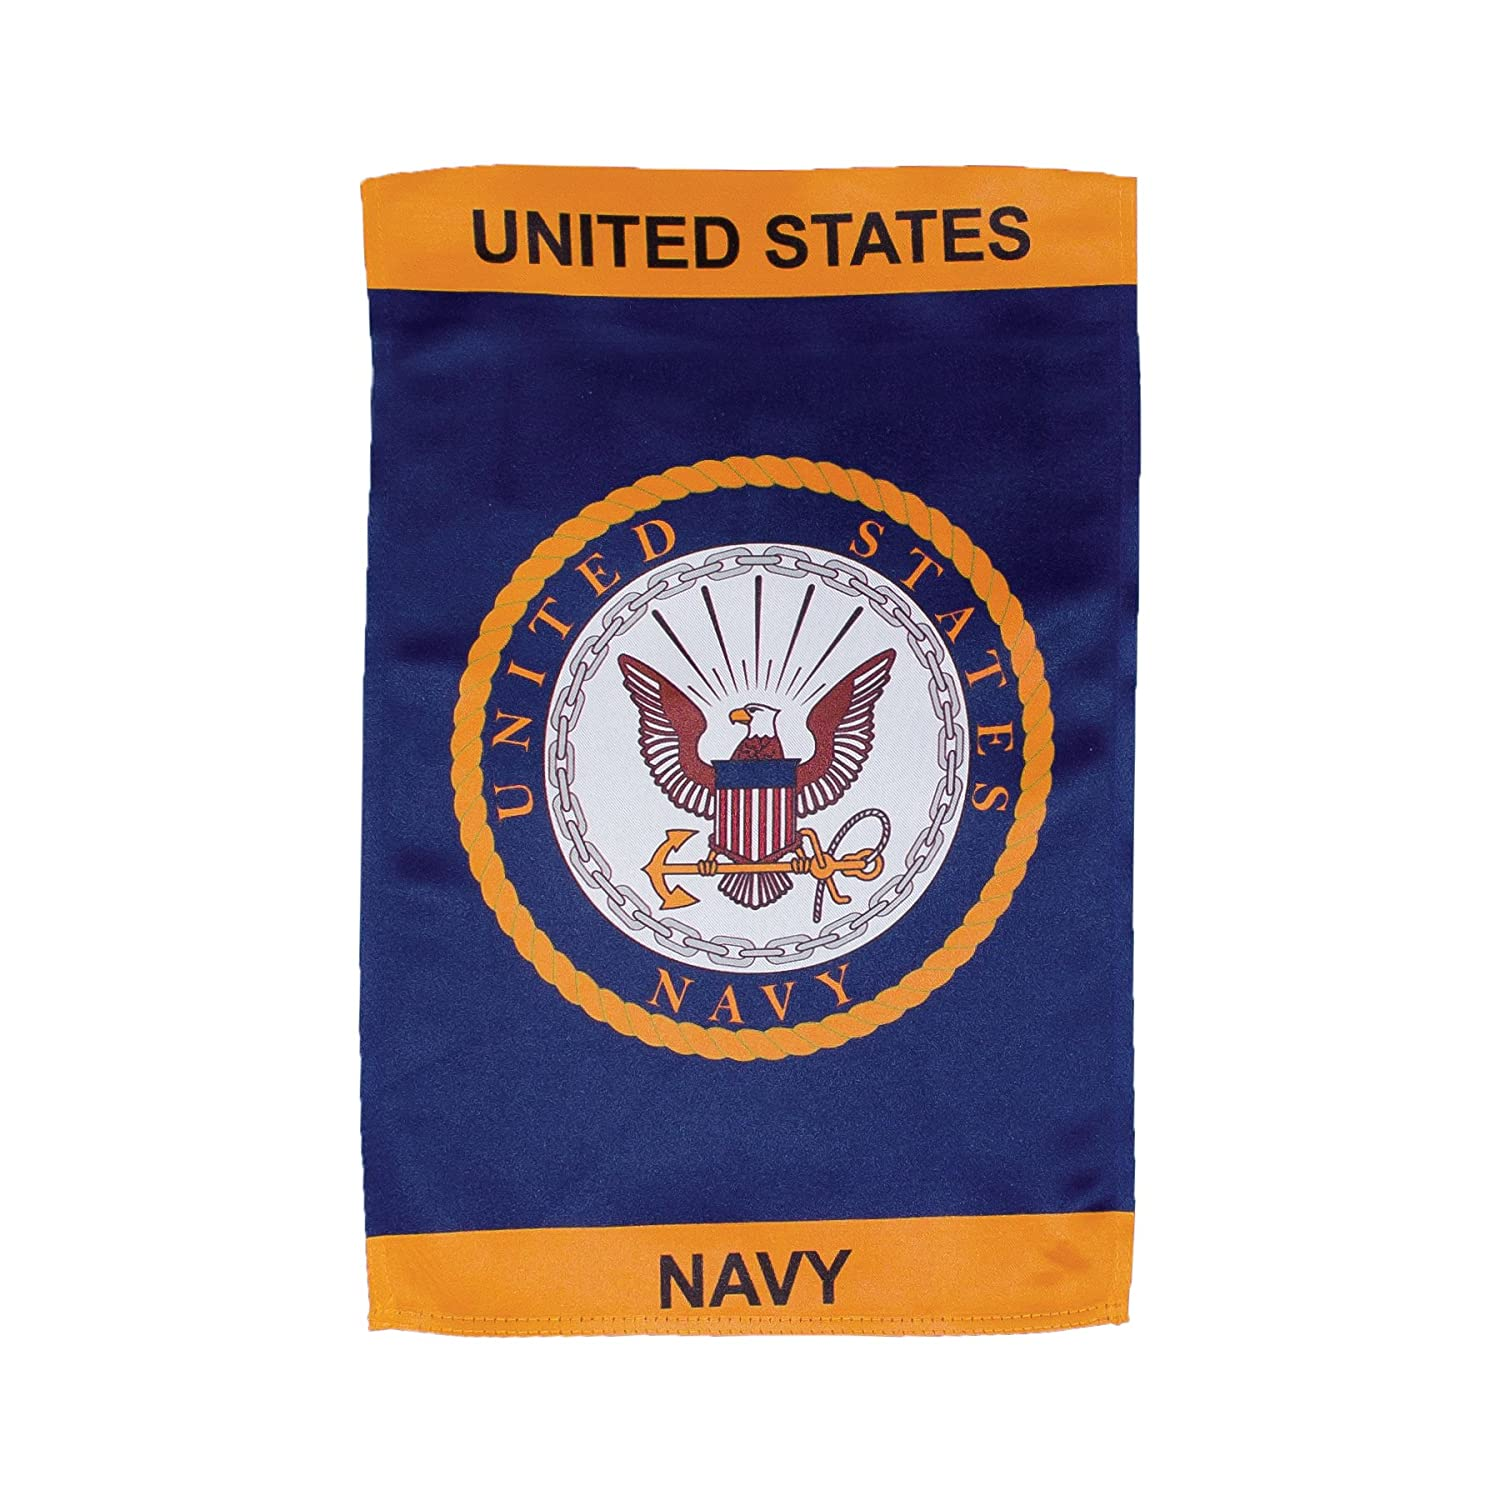 In the Breeze U.S. Navy Emblem Lustre Garden Flag - Double Sided Military Service Flag